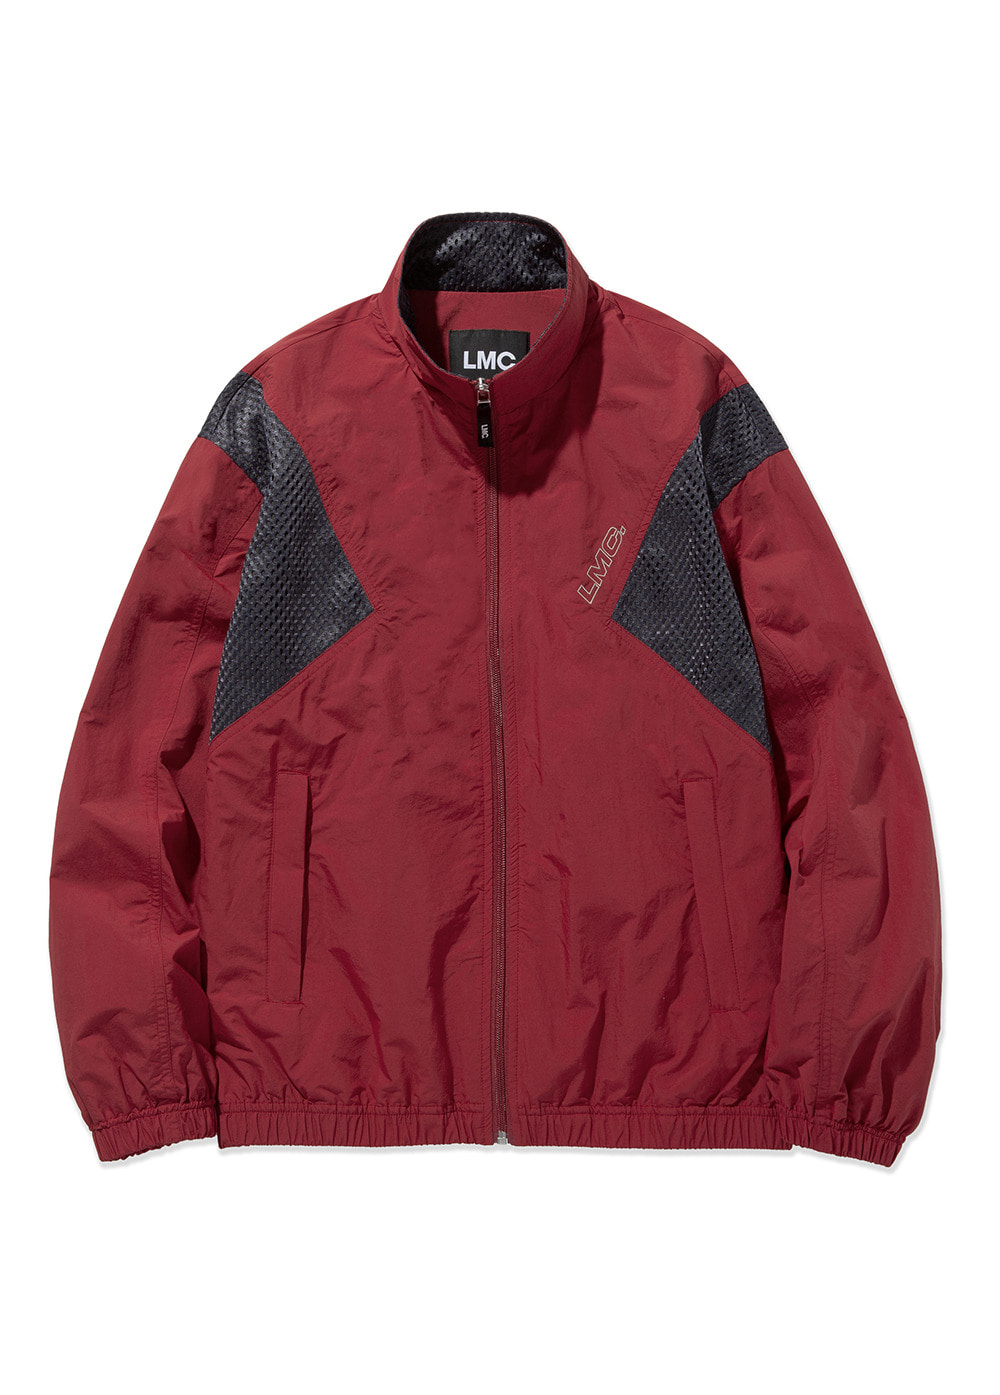 LMC MMWB TRACK SUIT JACKET red